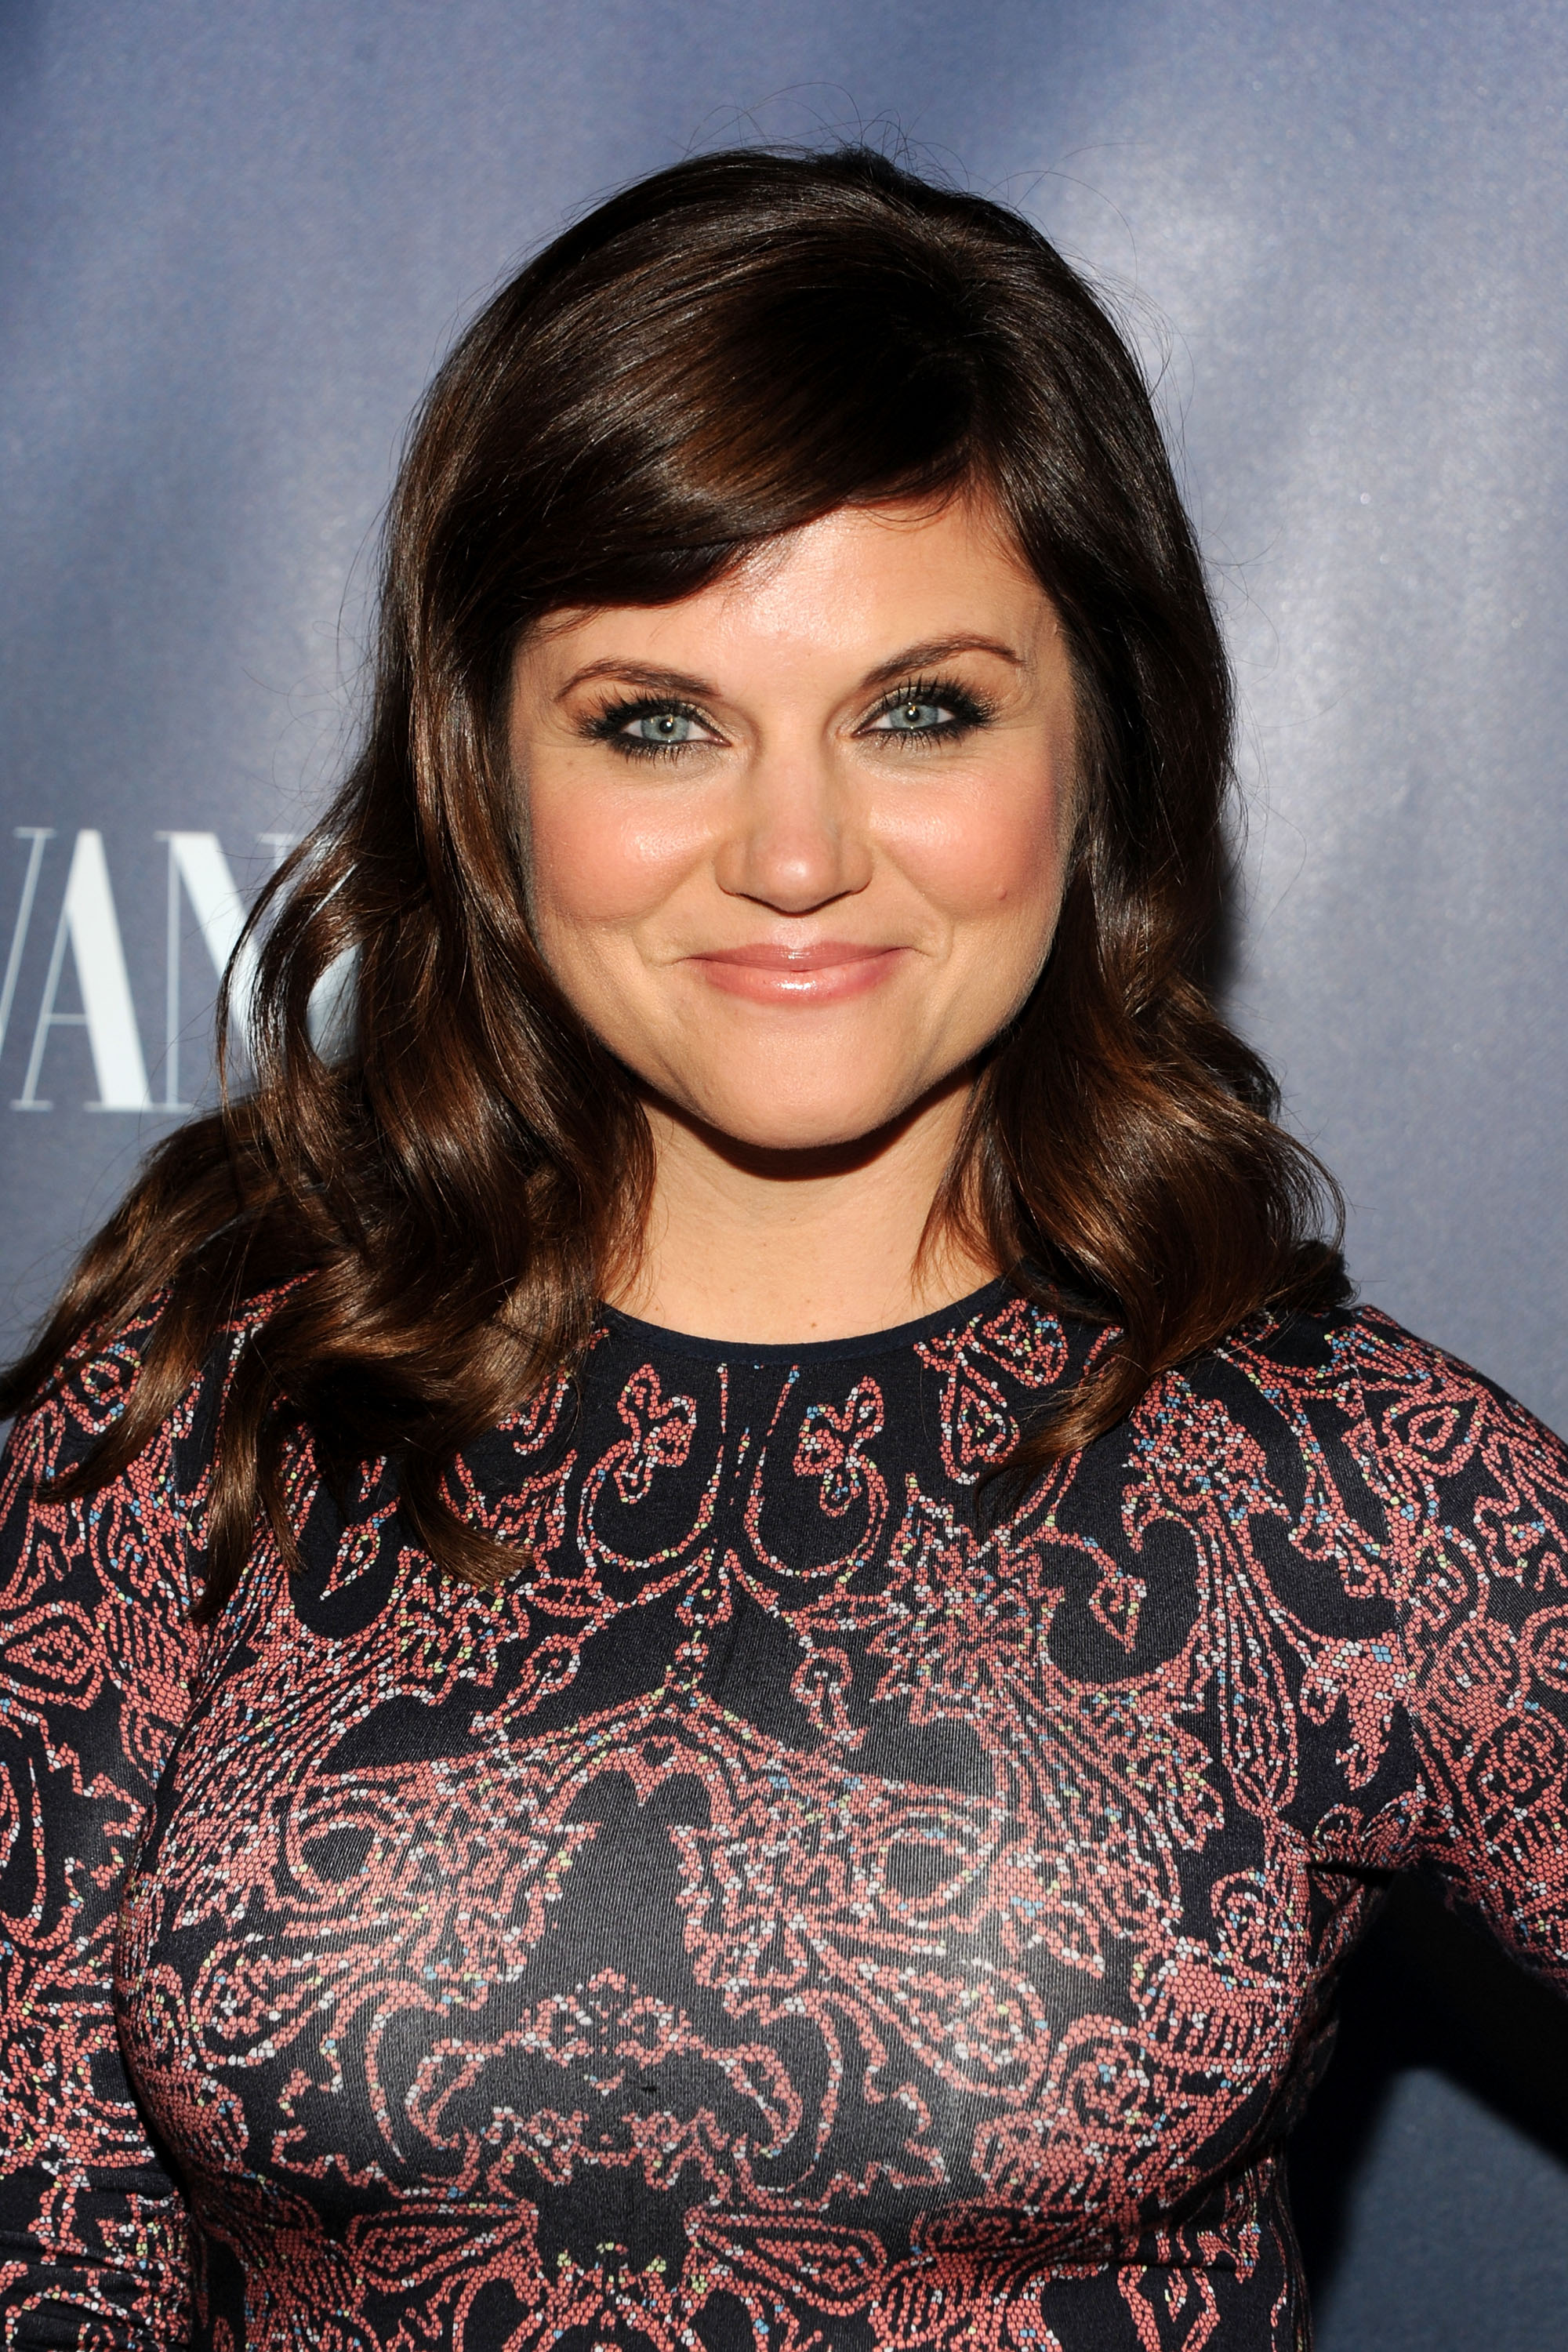 Actress Tiffani Thiessen attends NBC's 2013 Fall Launch Party Hosted By Vanity Fair at The Standard Hotel on Sept. 16, 2013 in New York City.